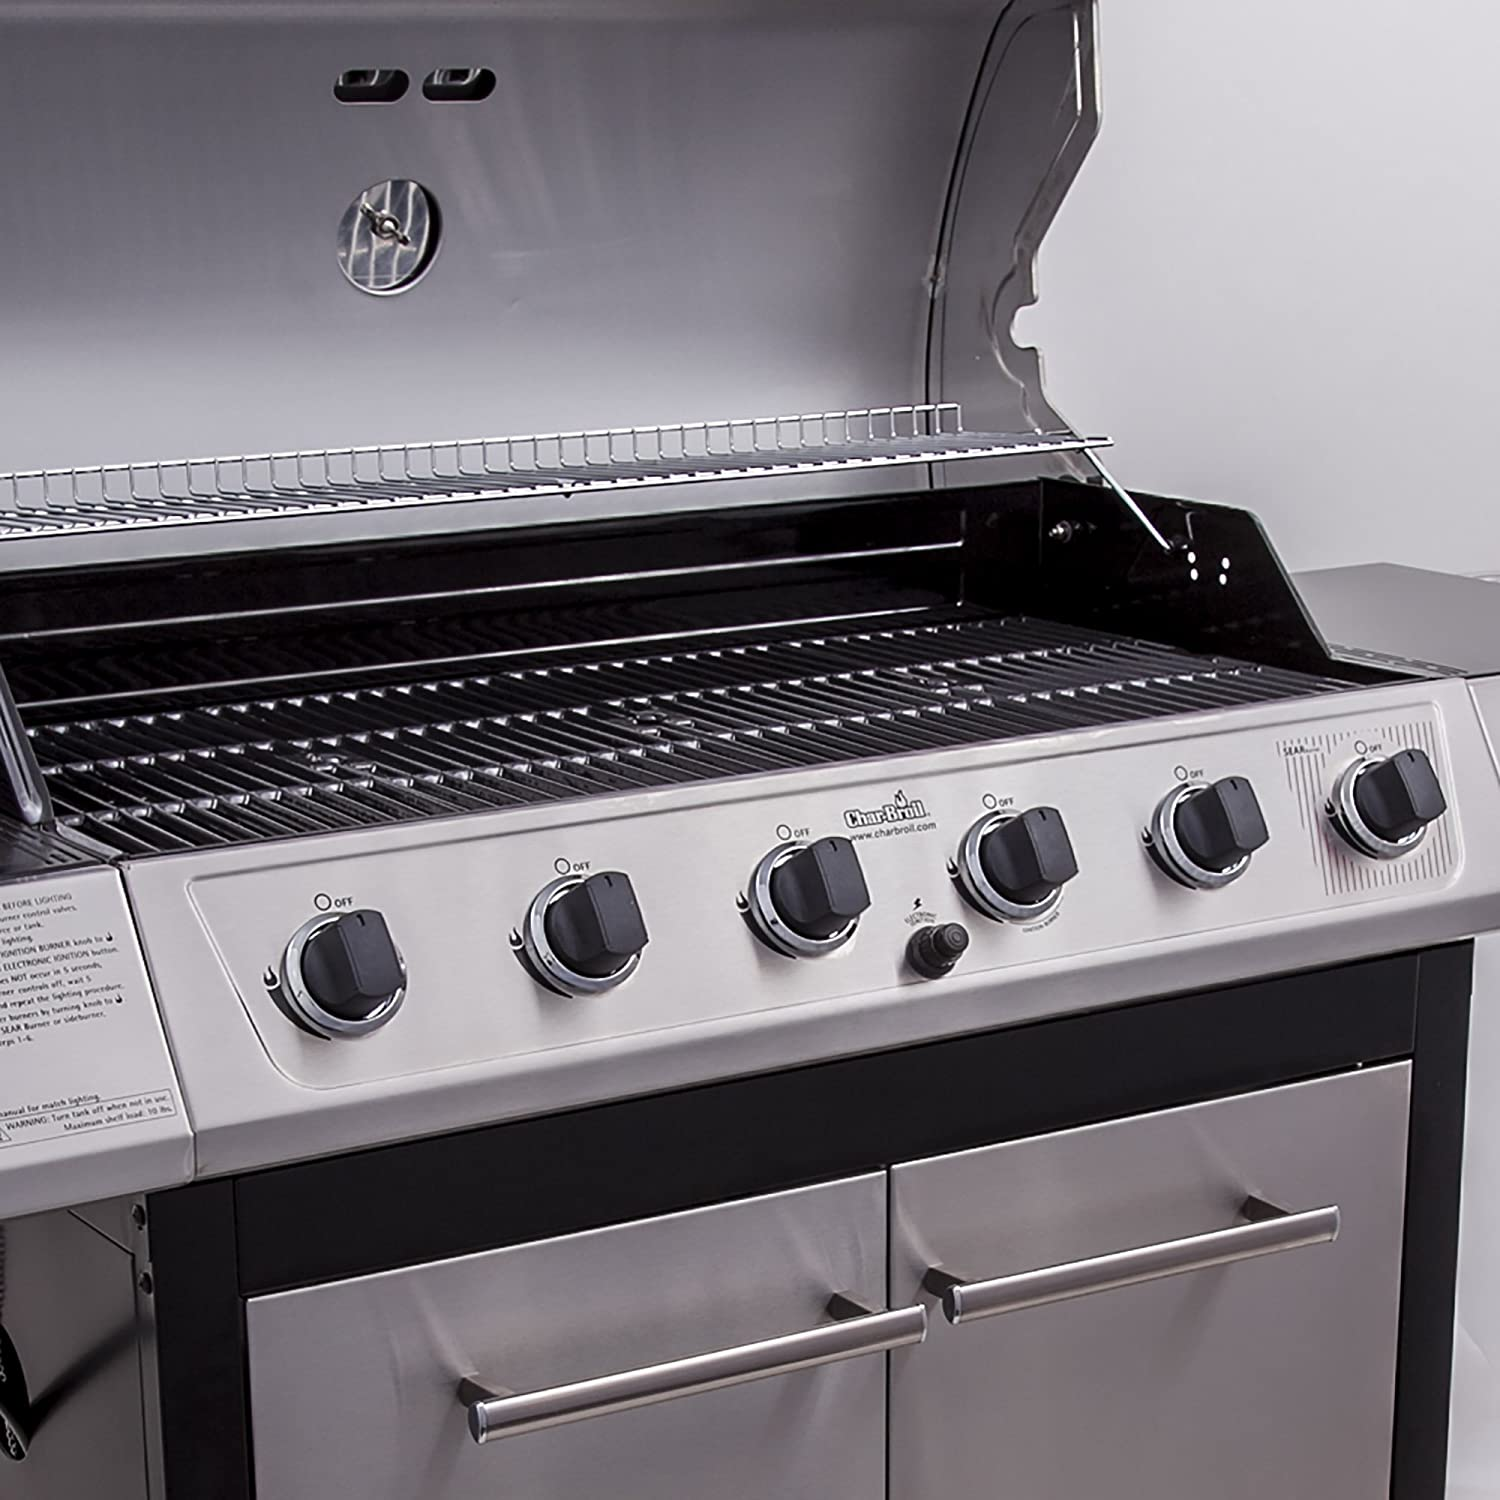 Amazon.com : Char-Broil Classic 6-Burner Gas Grill : Freestanding Grills :  Patio, Lawn & Garden